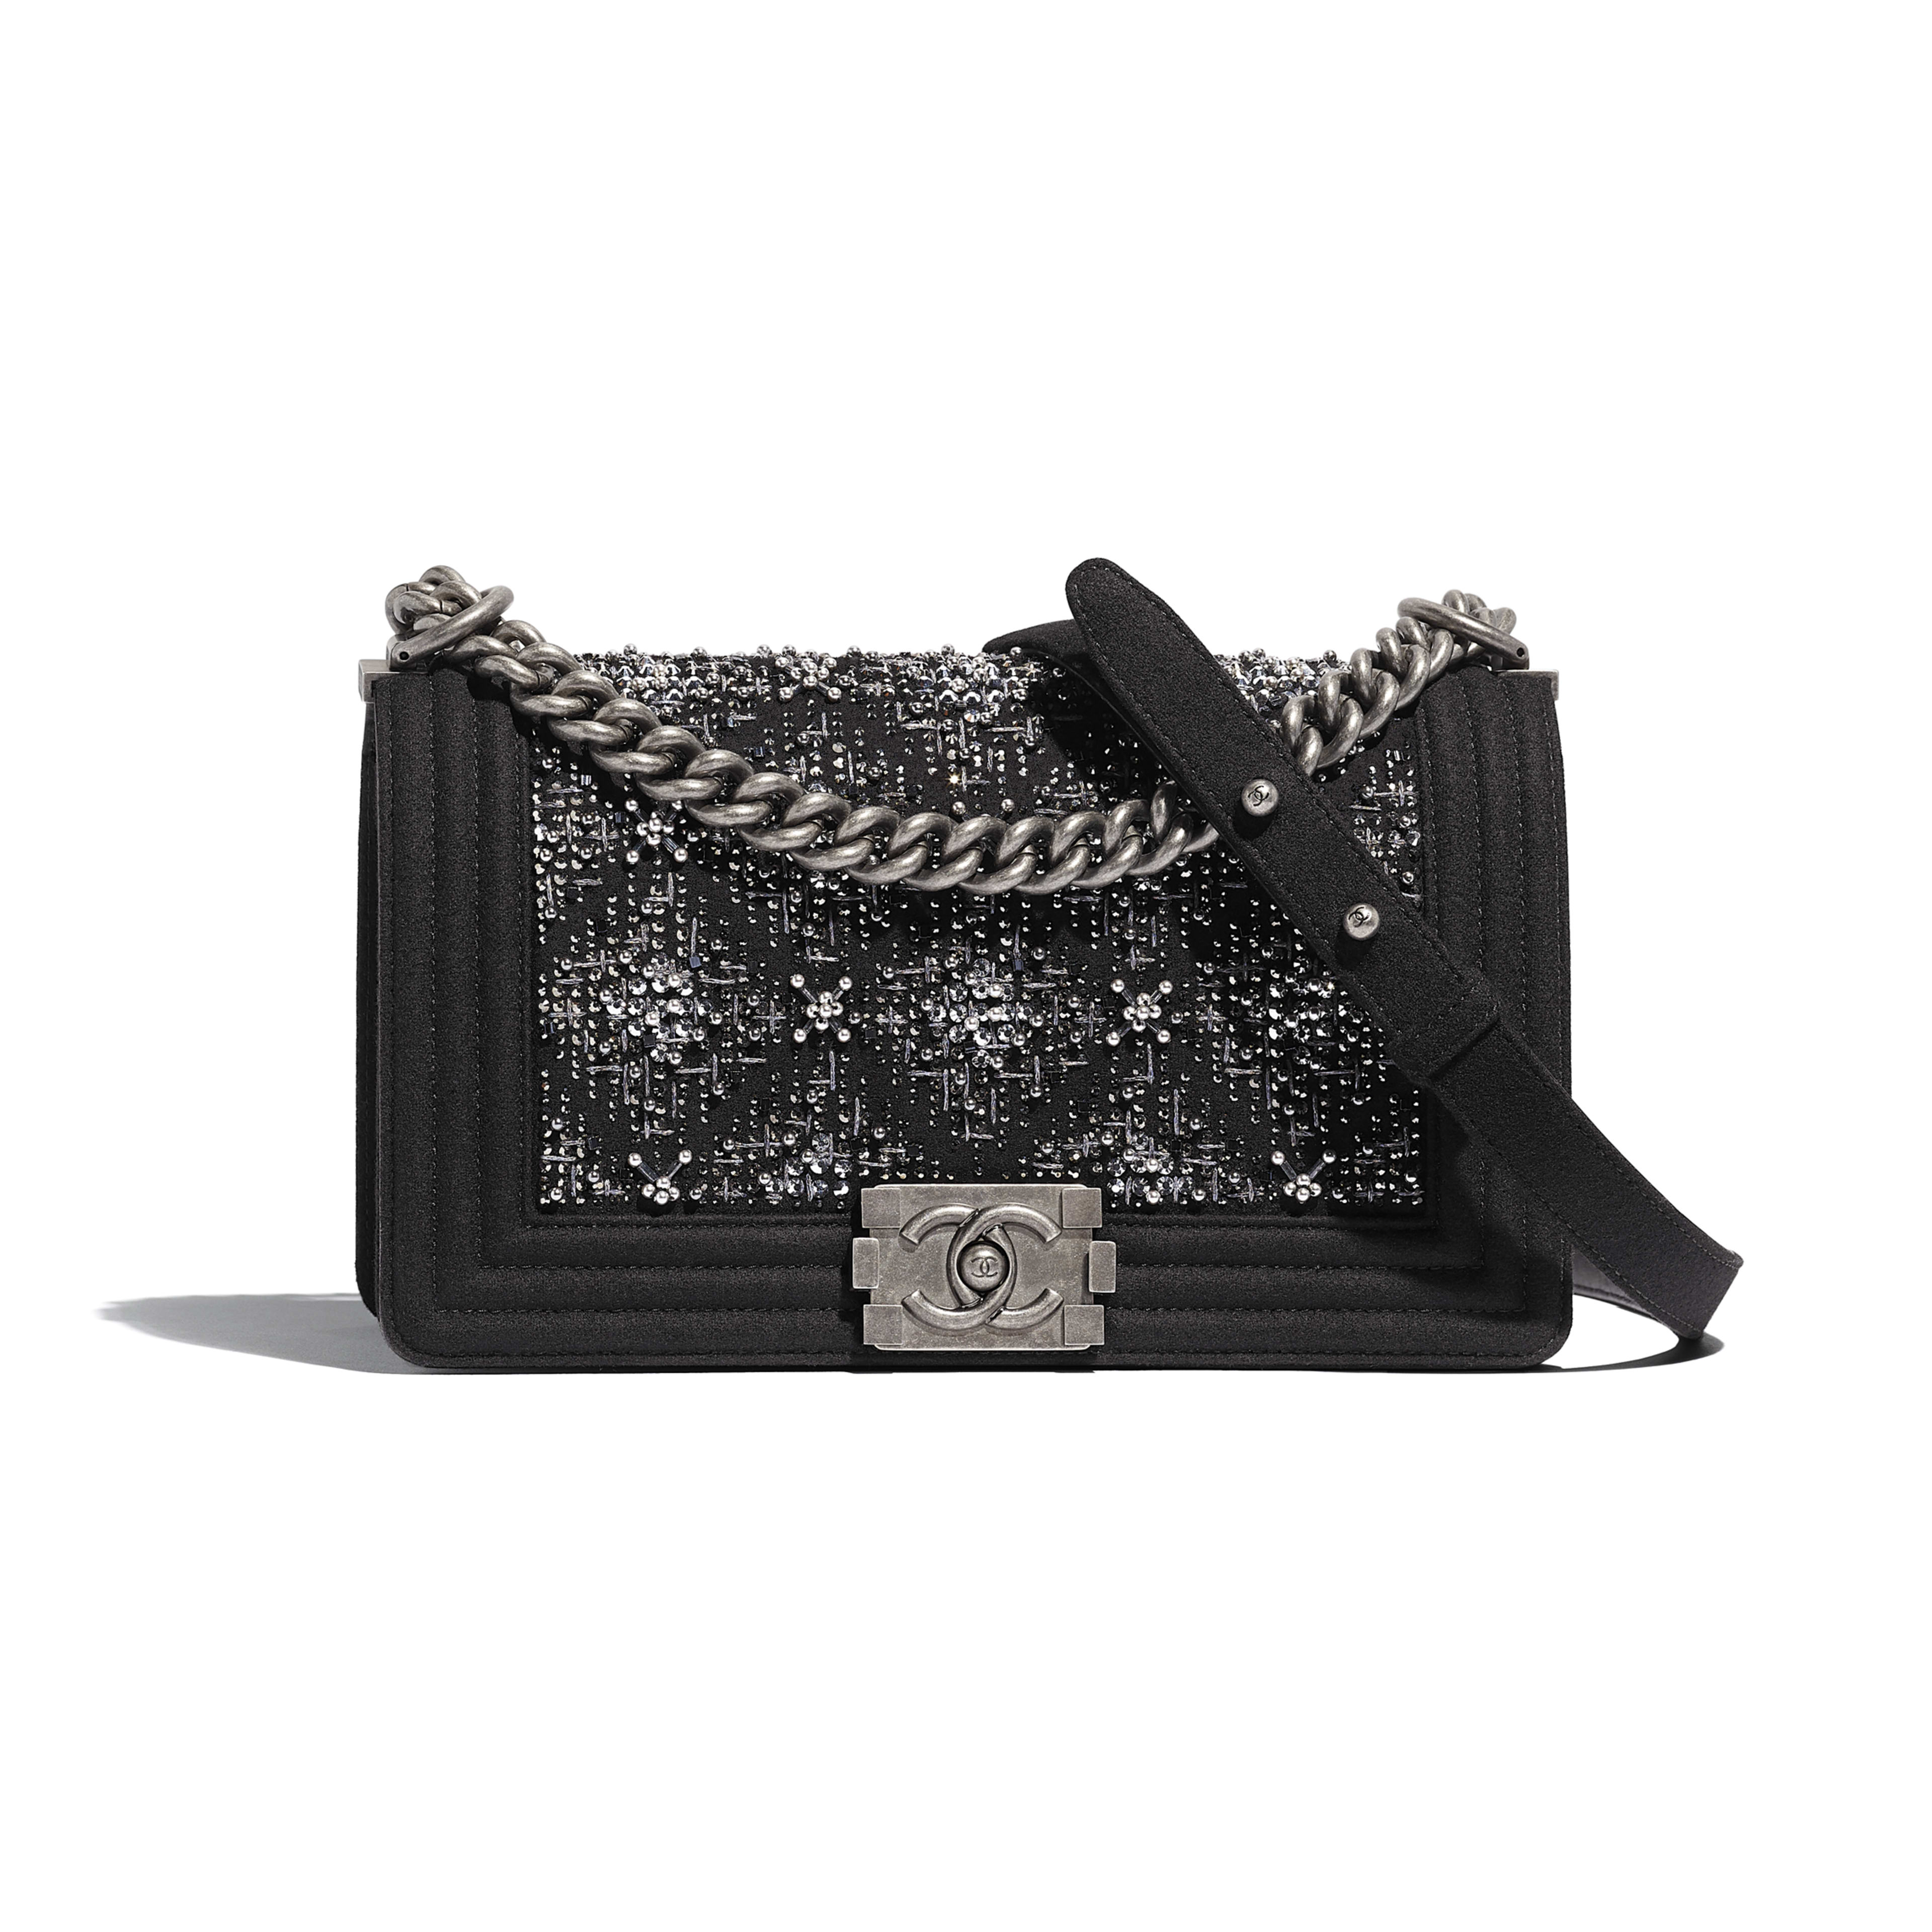 BOY CHANEL Handbag - Black - Wool, Strass & Ruthenium-Finish Metal - Default view - see full sized version